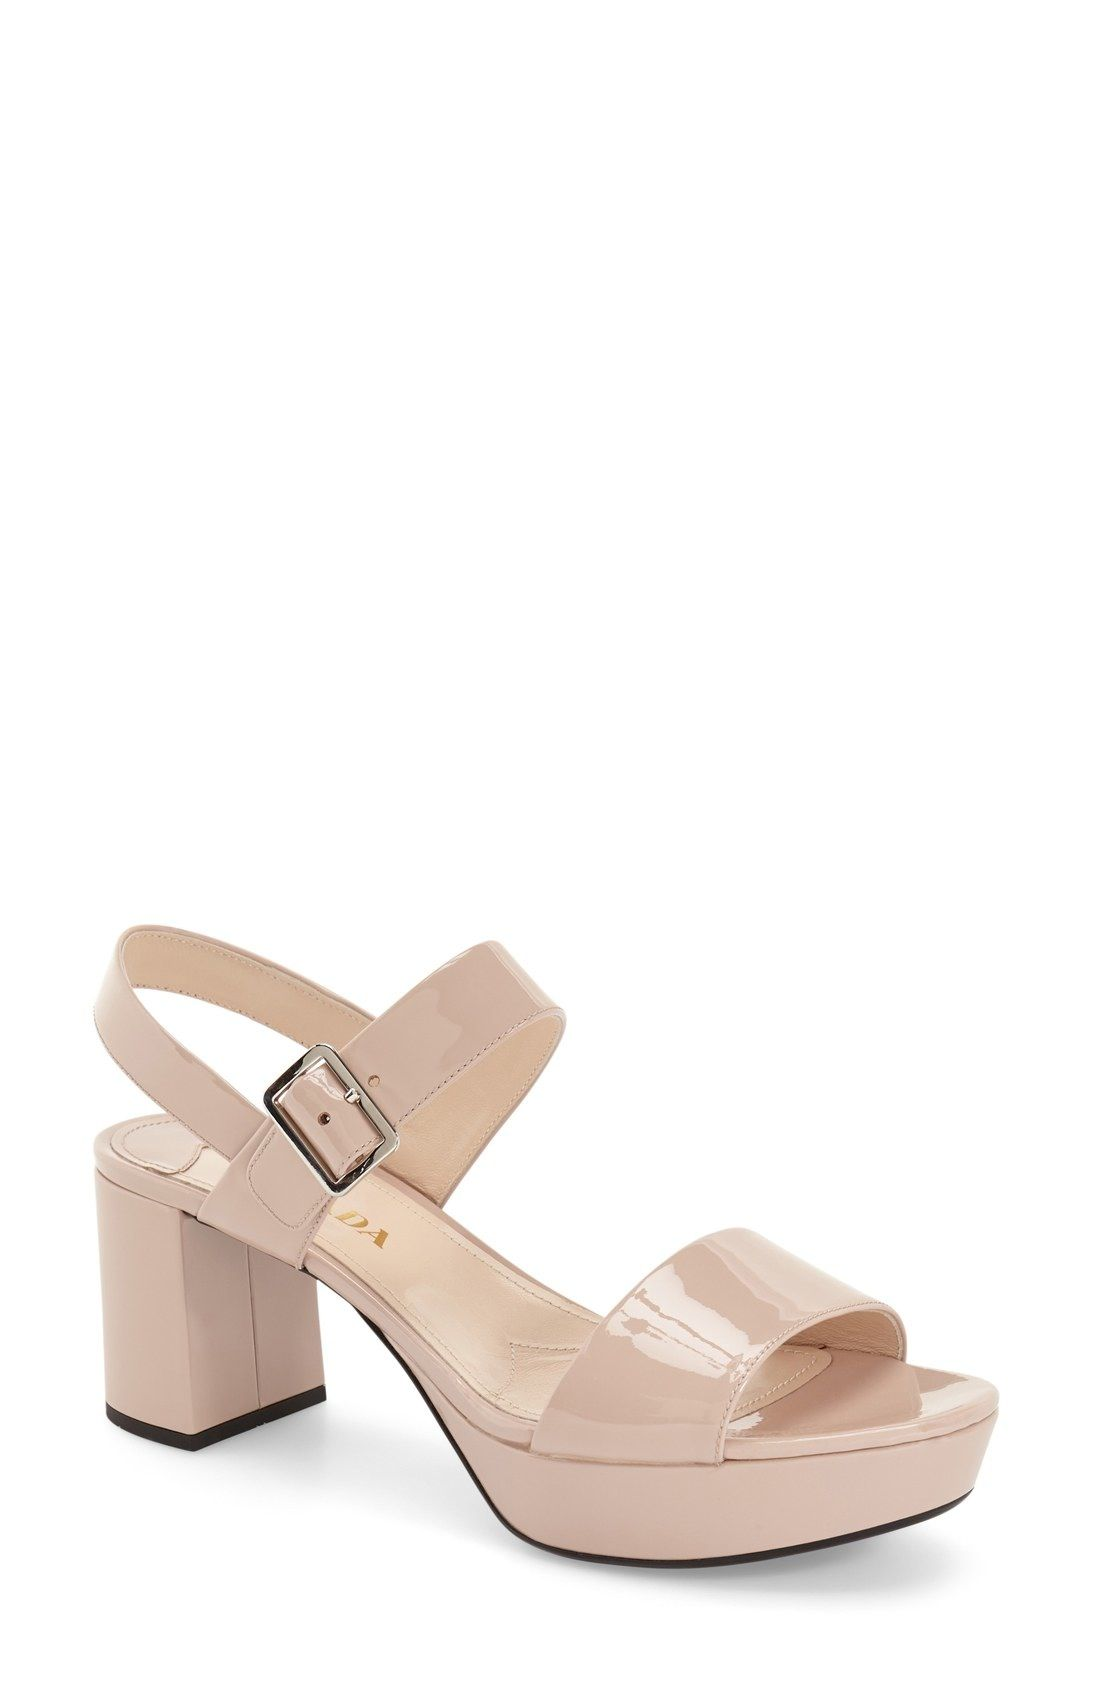 73adc451a9a Prada Block Heel Sandal (Women) available at  Nordstrom